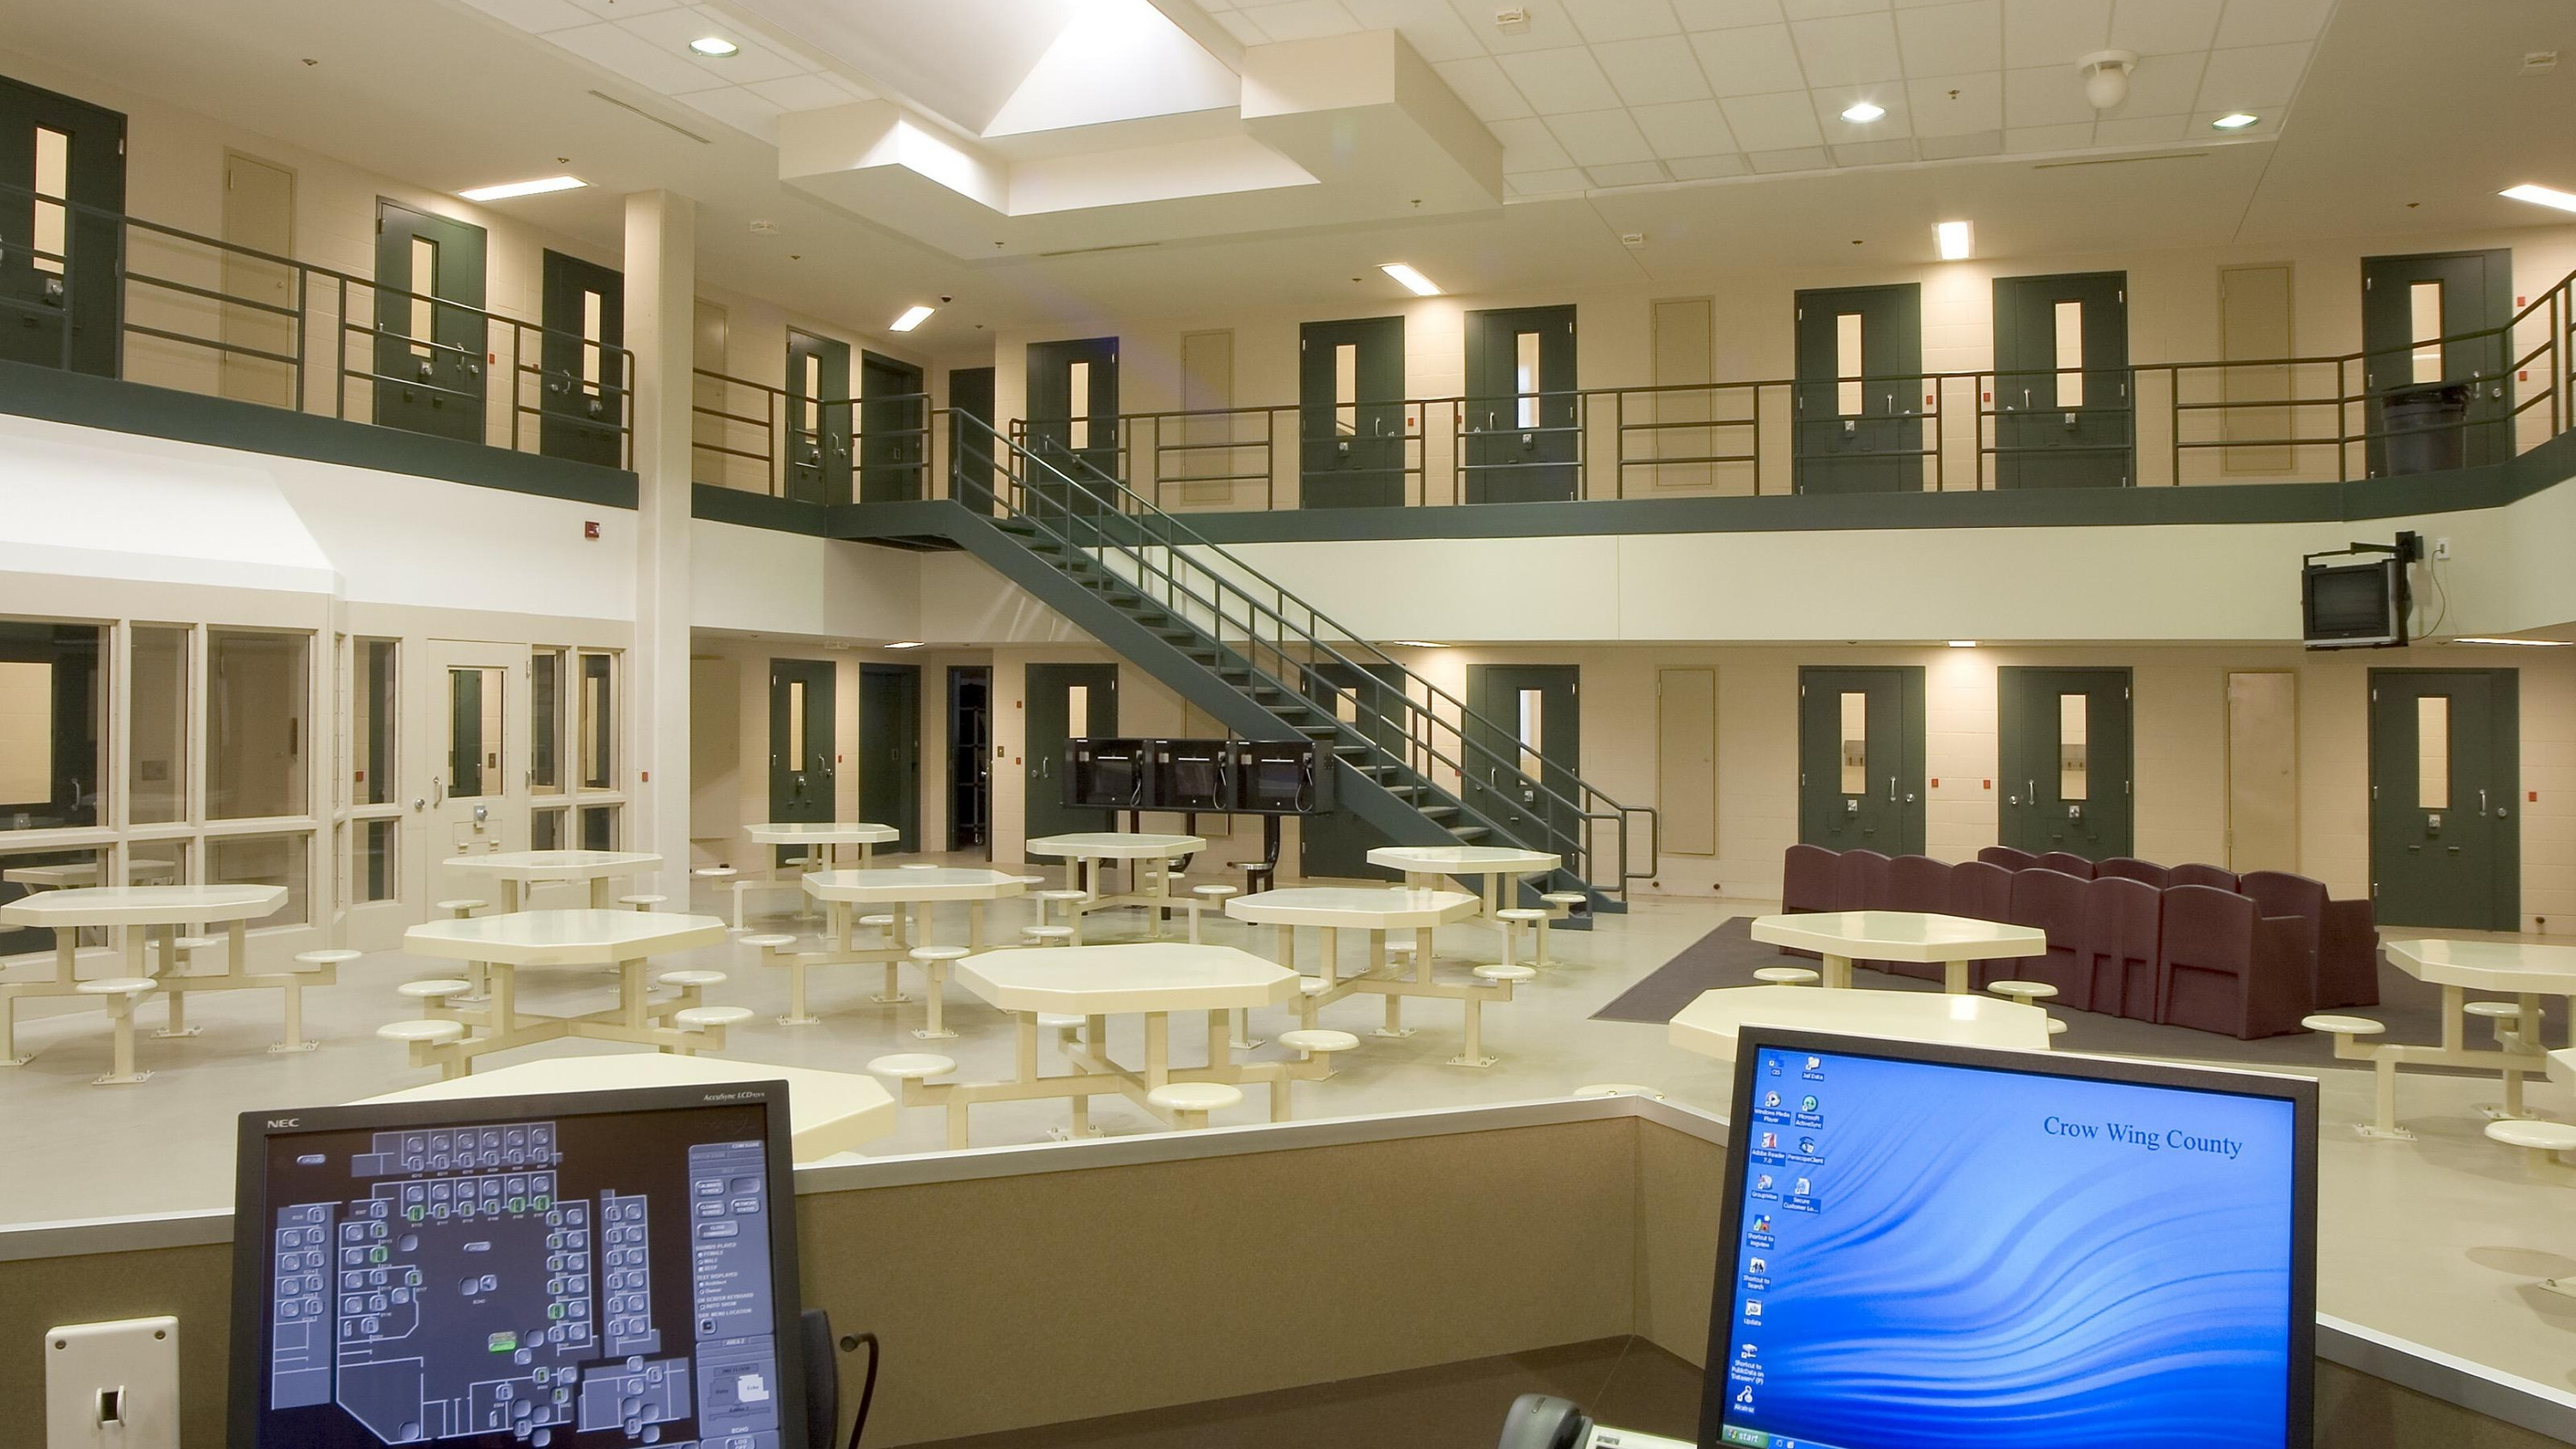 Crow wing county jail